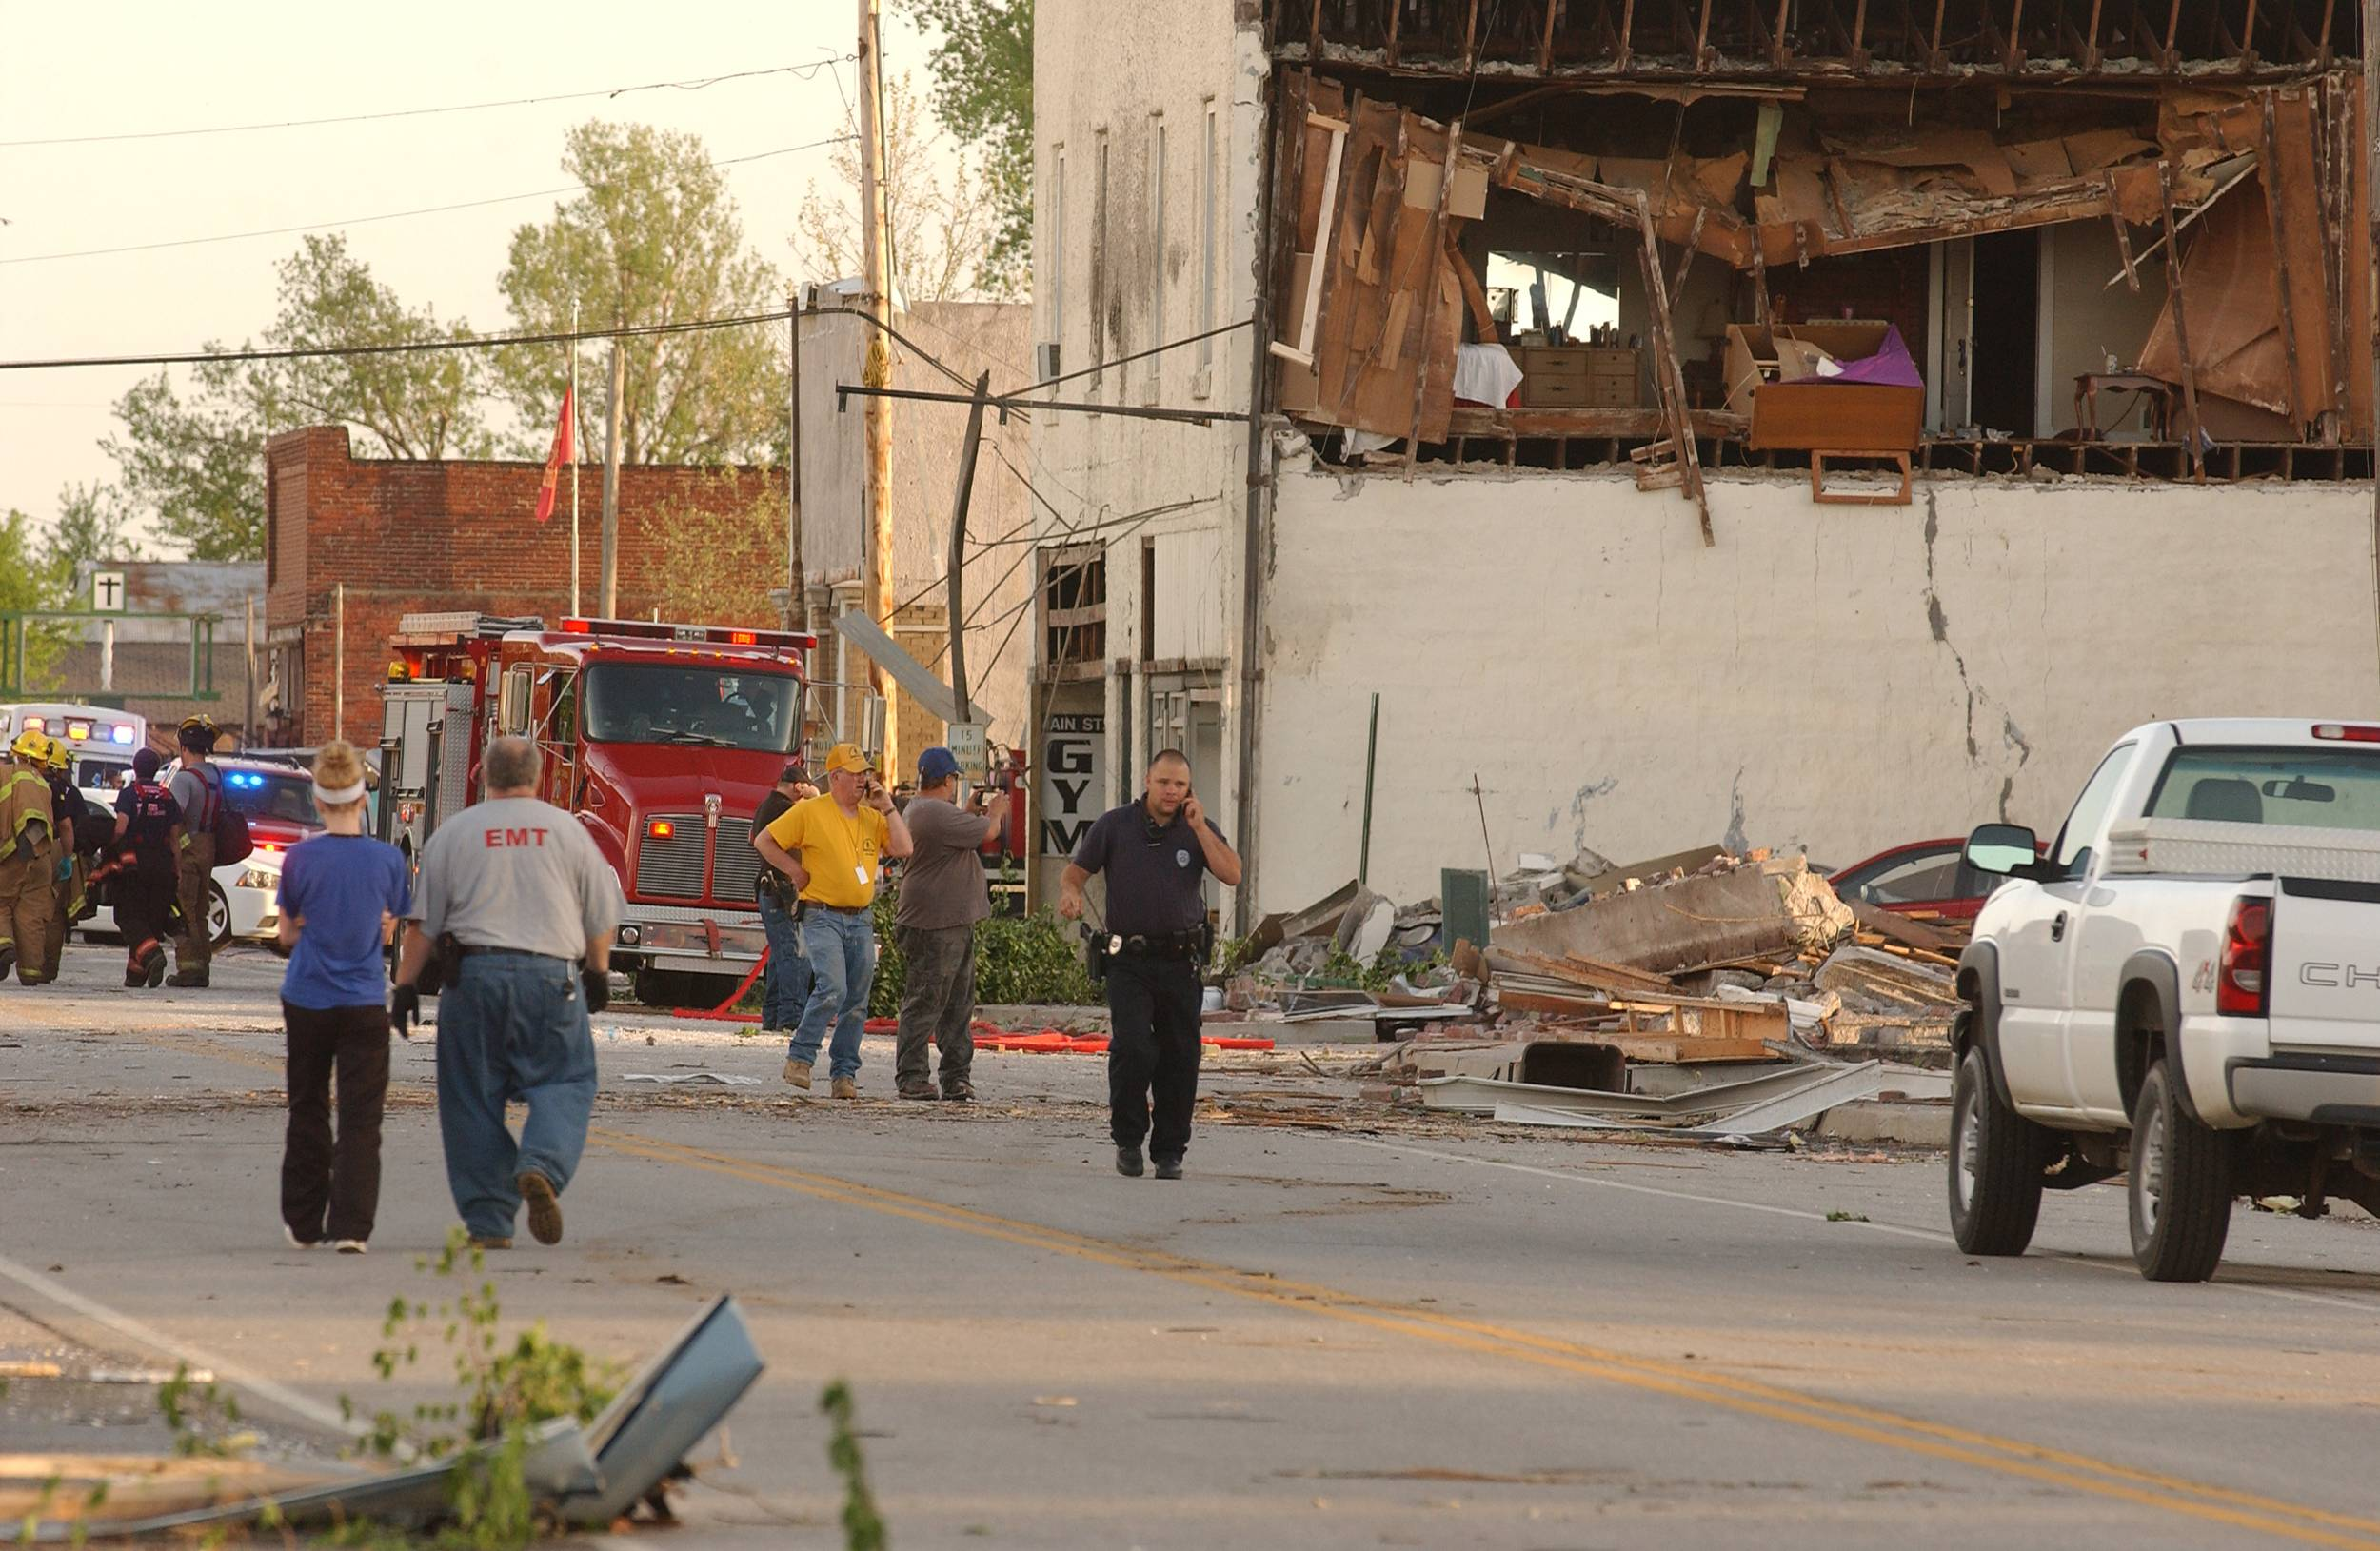 First responders, volunteers and firemen gather on Main Street in Quapaw, Okla. after a tornado struck the city on Sunday evening, April 27, 2014.    A powerful storm system rumbled through the central and southern United States on Sunday, spawning a massive tornado that carved path of destruction through the northern Little Rock suburbs and another twister that killed two people in Oklahoma and injured others in Kansas